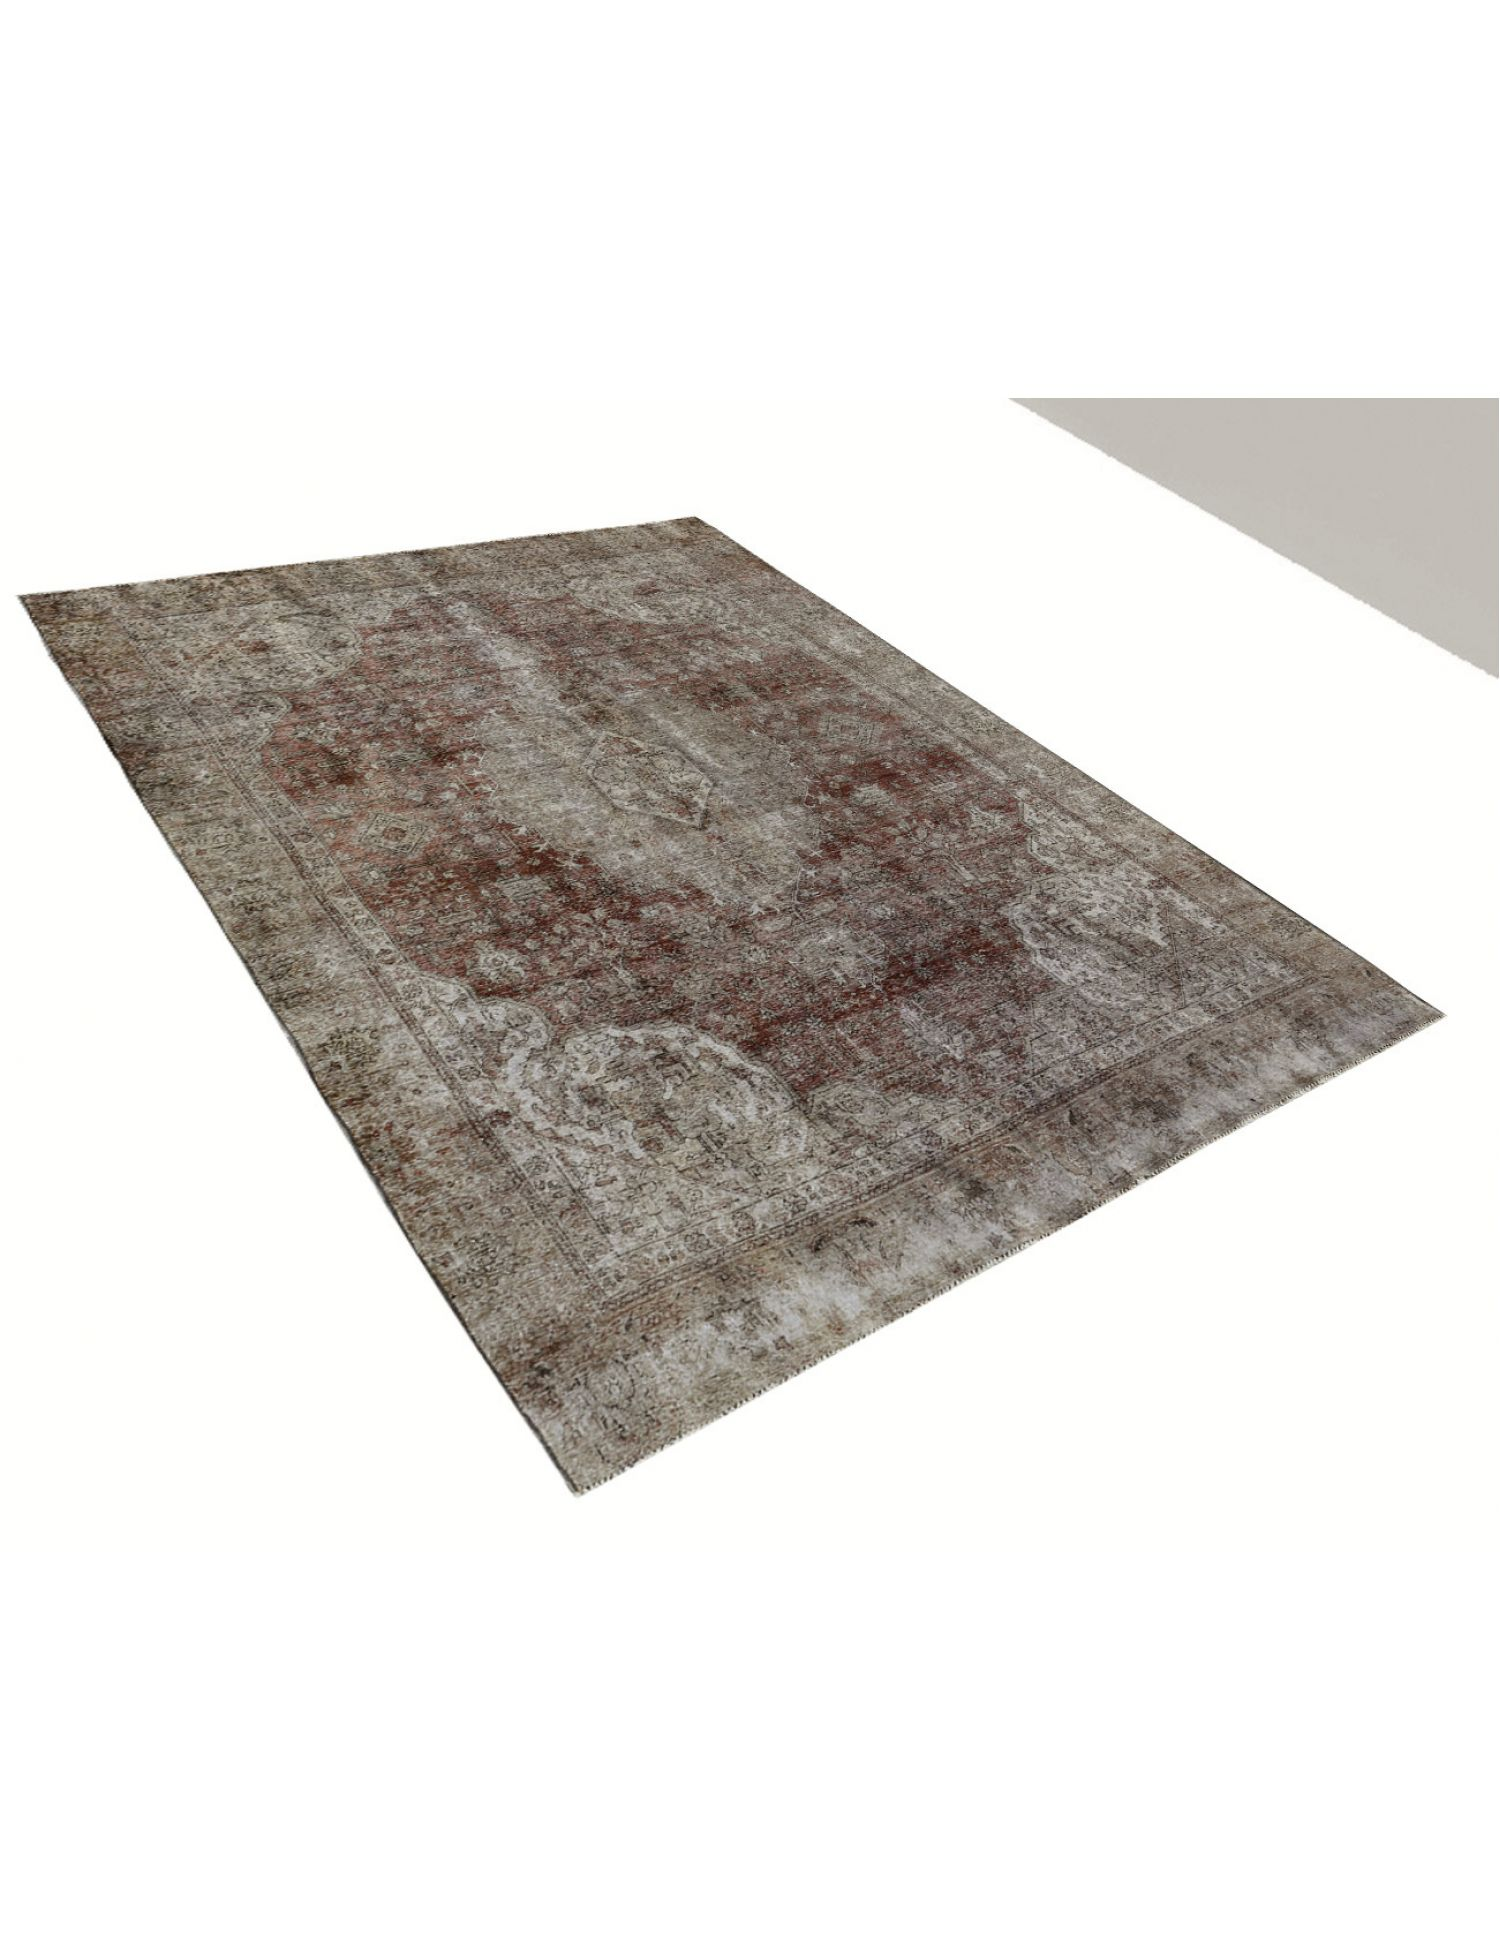 Vintage Carpet  grey <br/>352 x 262 cm